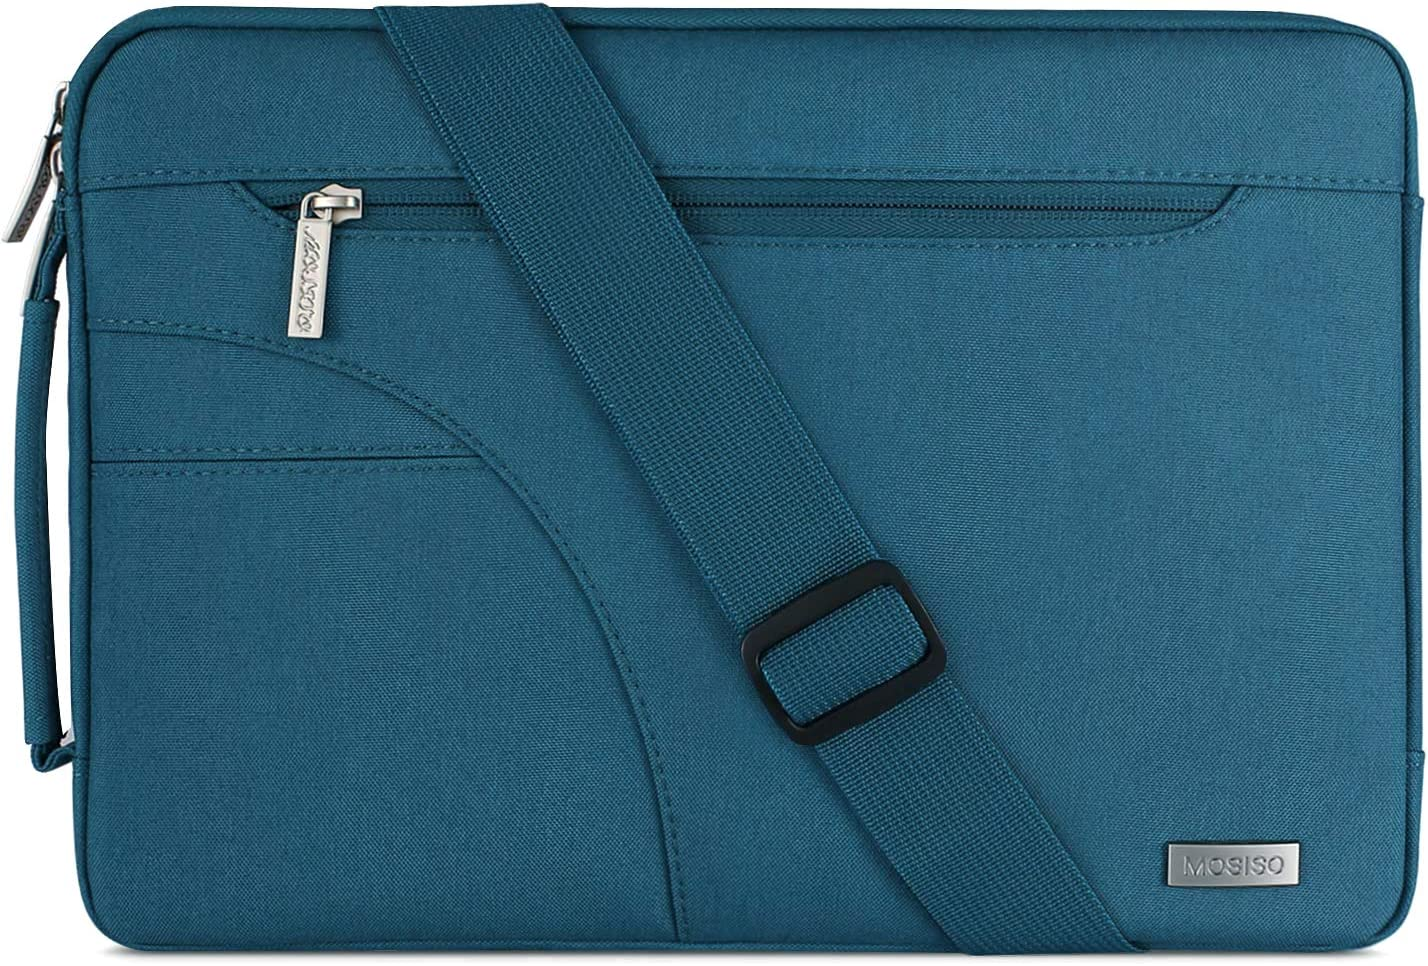 MOSISO Laptop Shoulder Bag Compatible with 13-13.3 inch MacBook Pro, MacBook Air, Notebook Computer, Polyester Briefcase Sleeve with Side Handle, Deep Teal